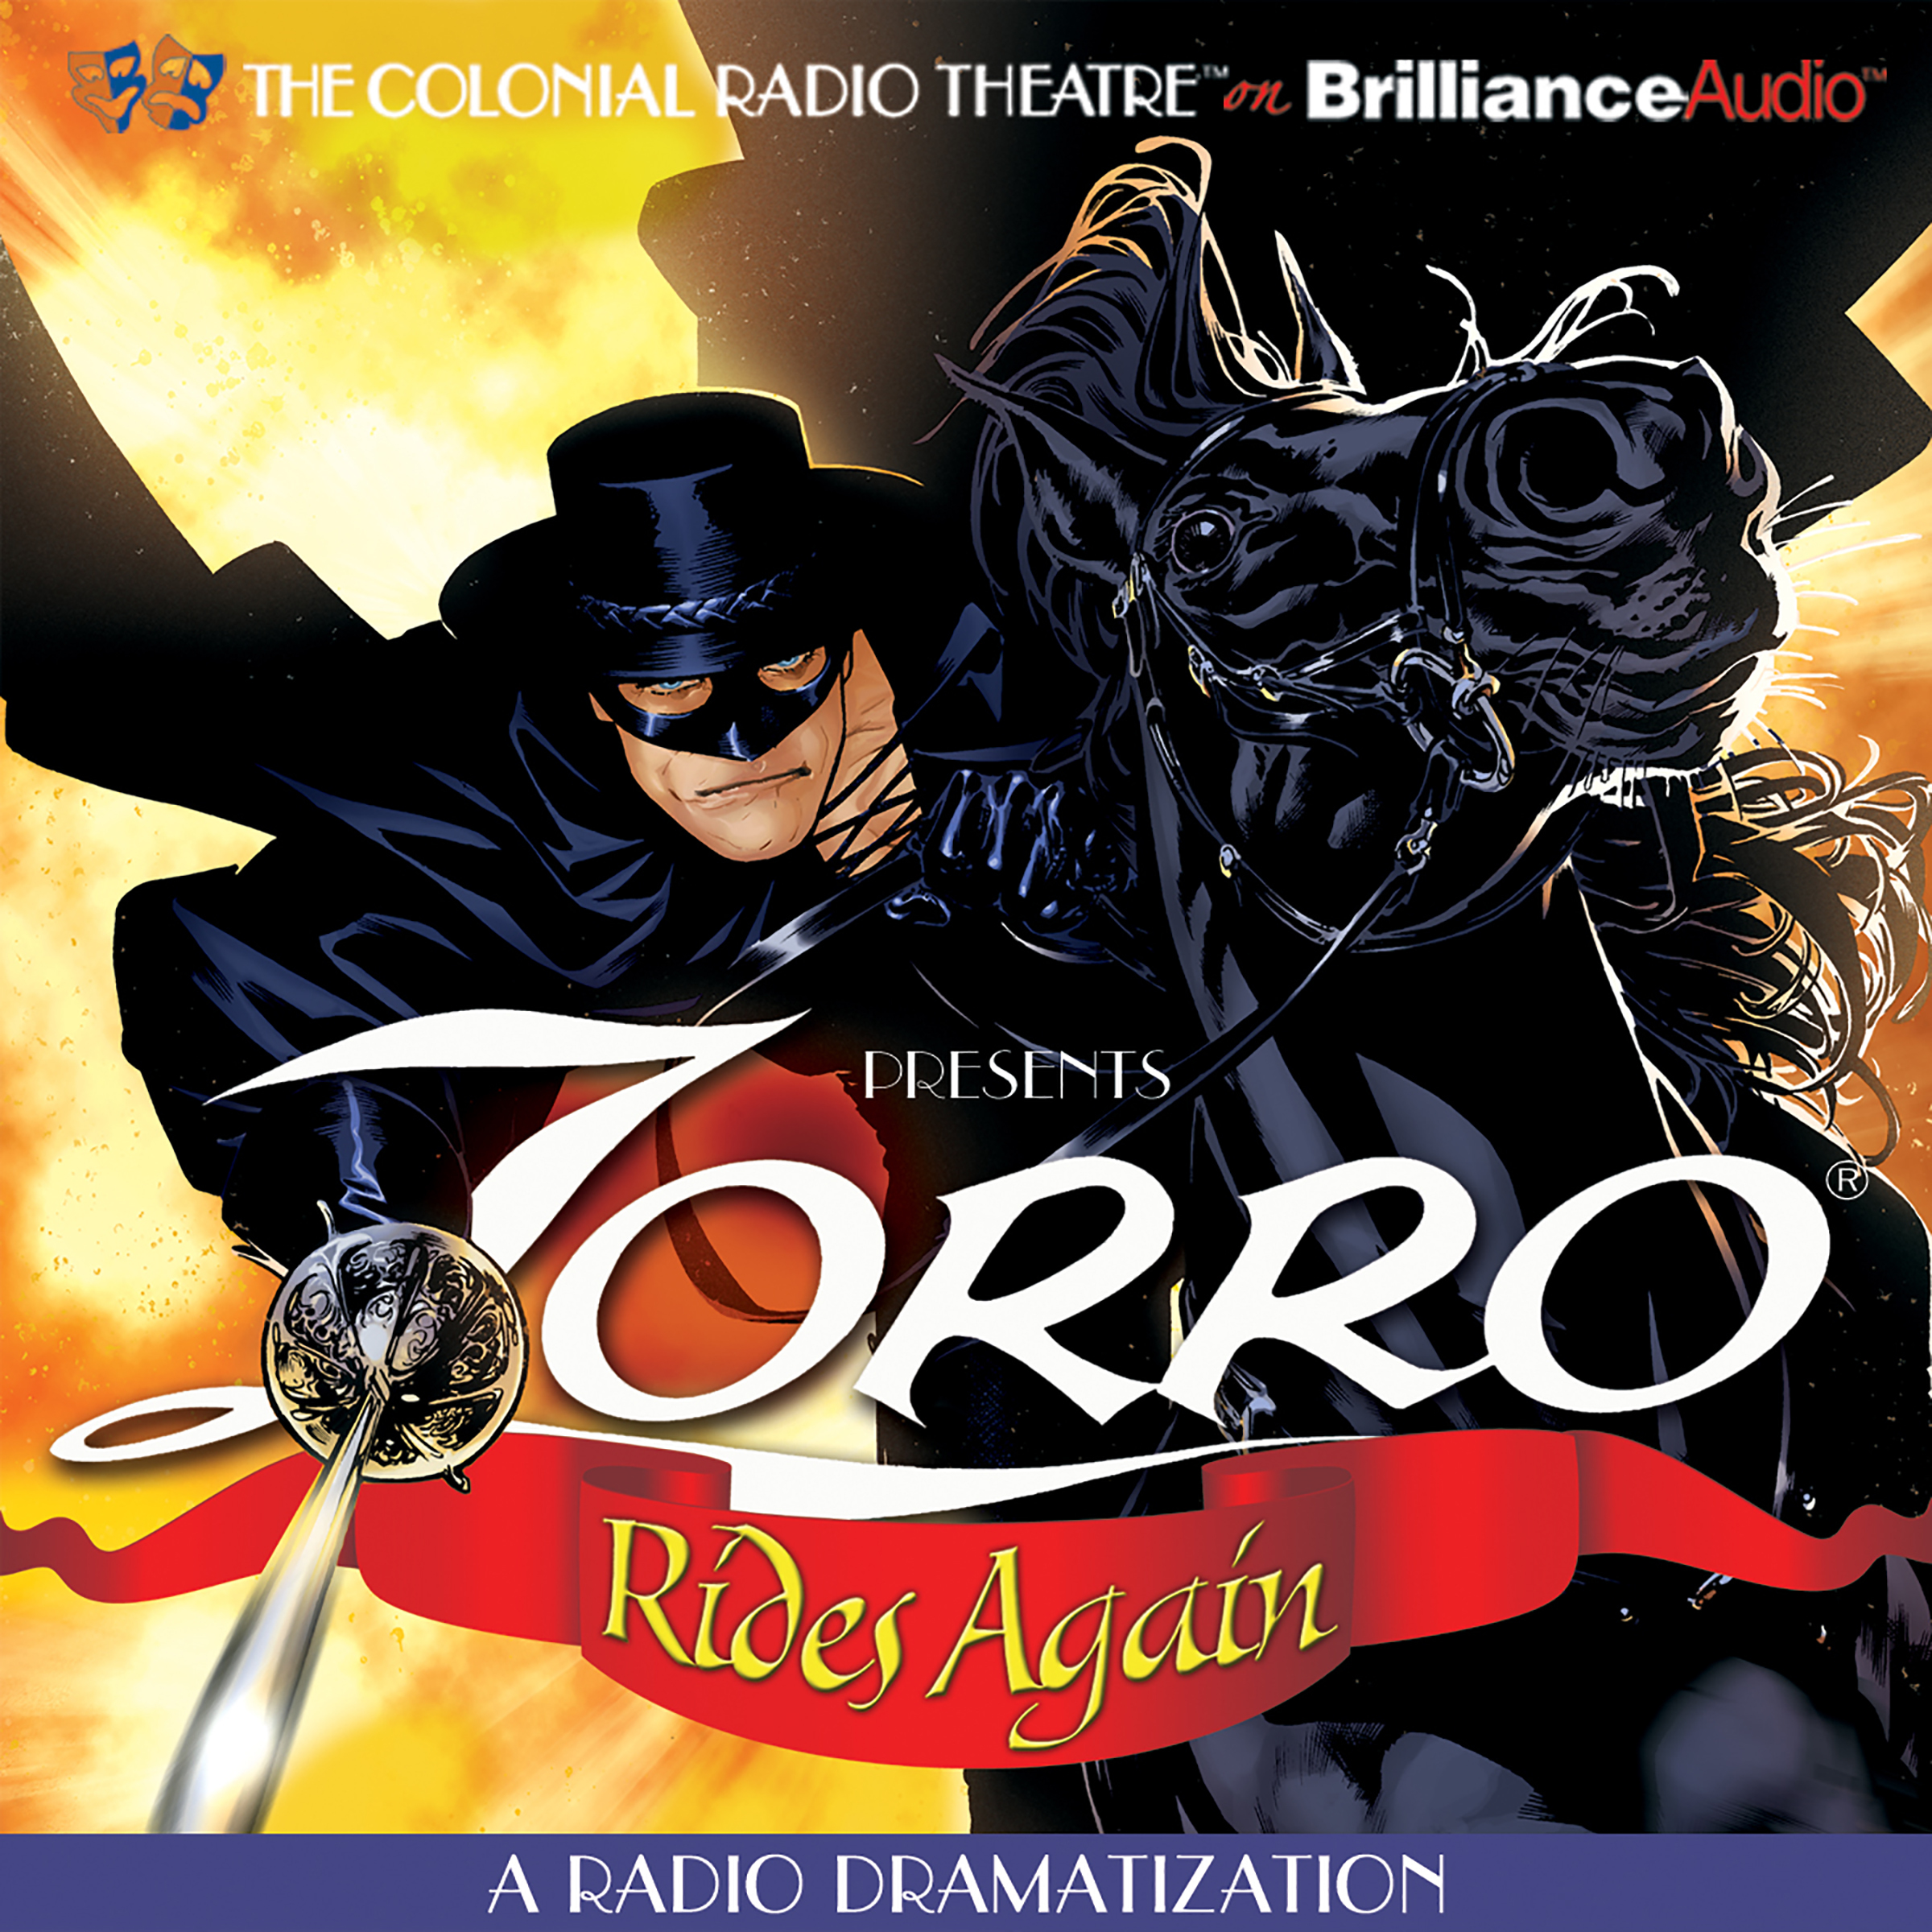 Printable Zorro Rides Again: A Radio Dramatization Audiobook Cover Art